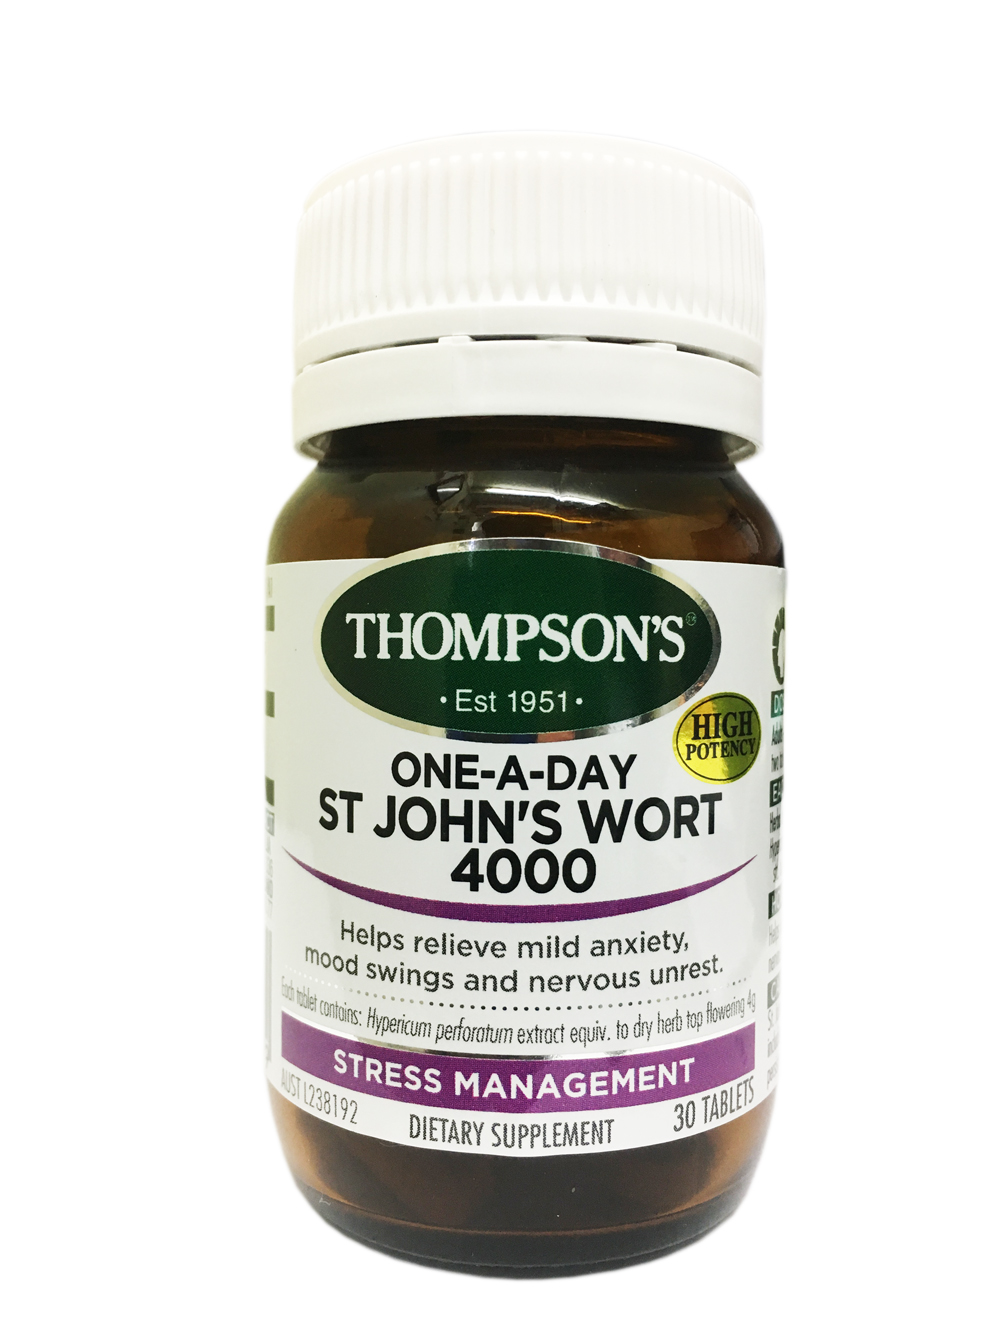 Thompsons One-A-Day St Johns Wort 4000 30 tab